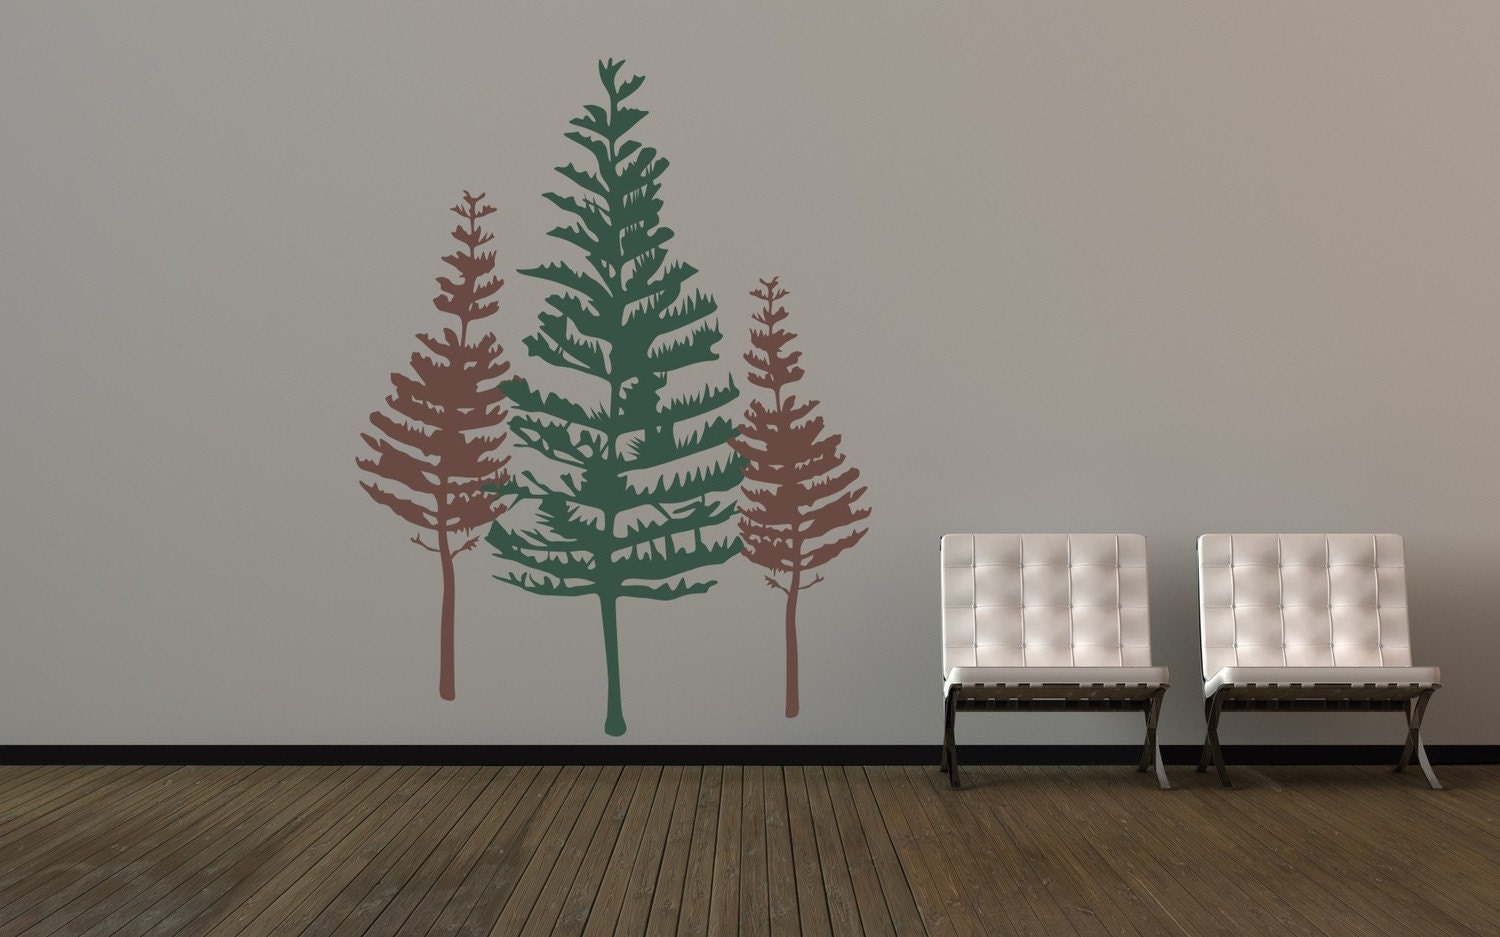 Rustic Tree Wall Decor : Tree wall decal rustic decor woodland by wallstargraphics